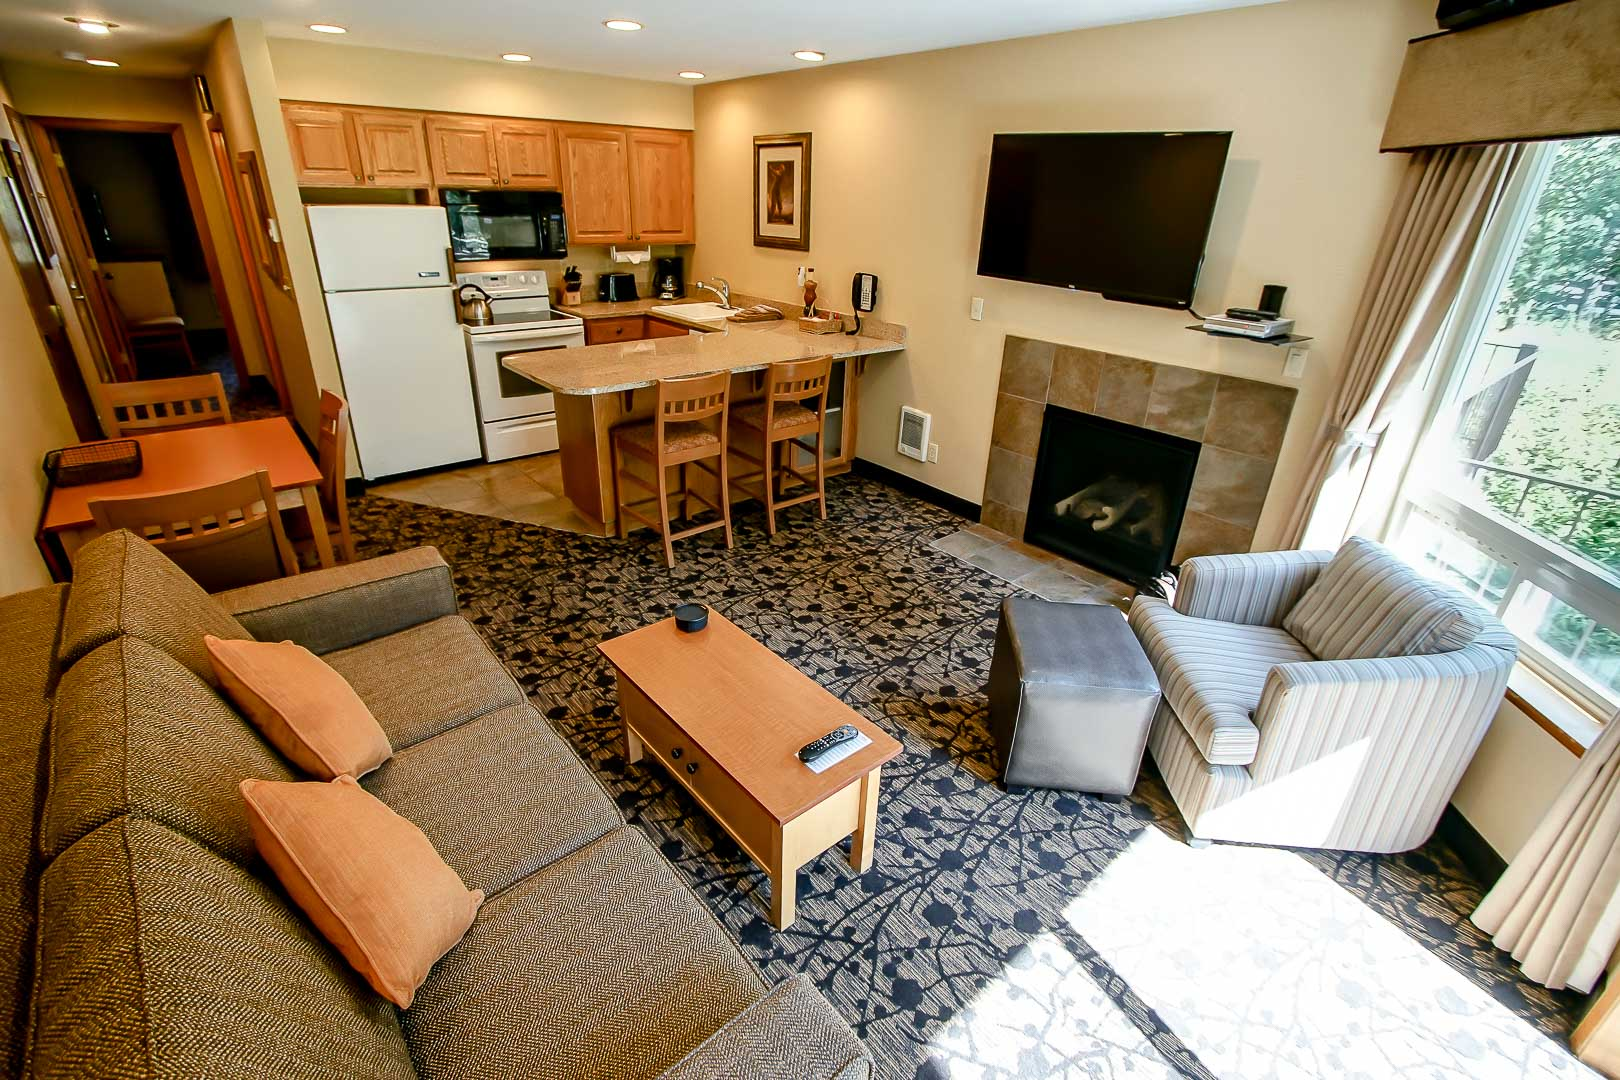 A spacious living room area at VRI's Whispering Woods Resort in Oregon.